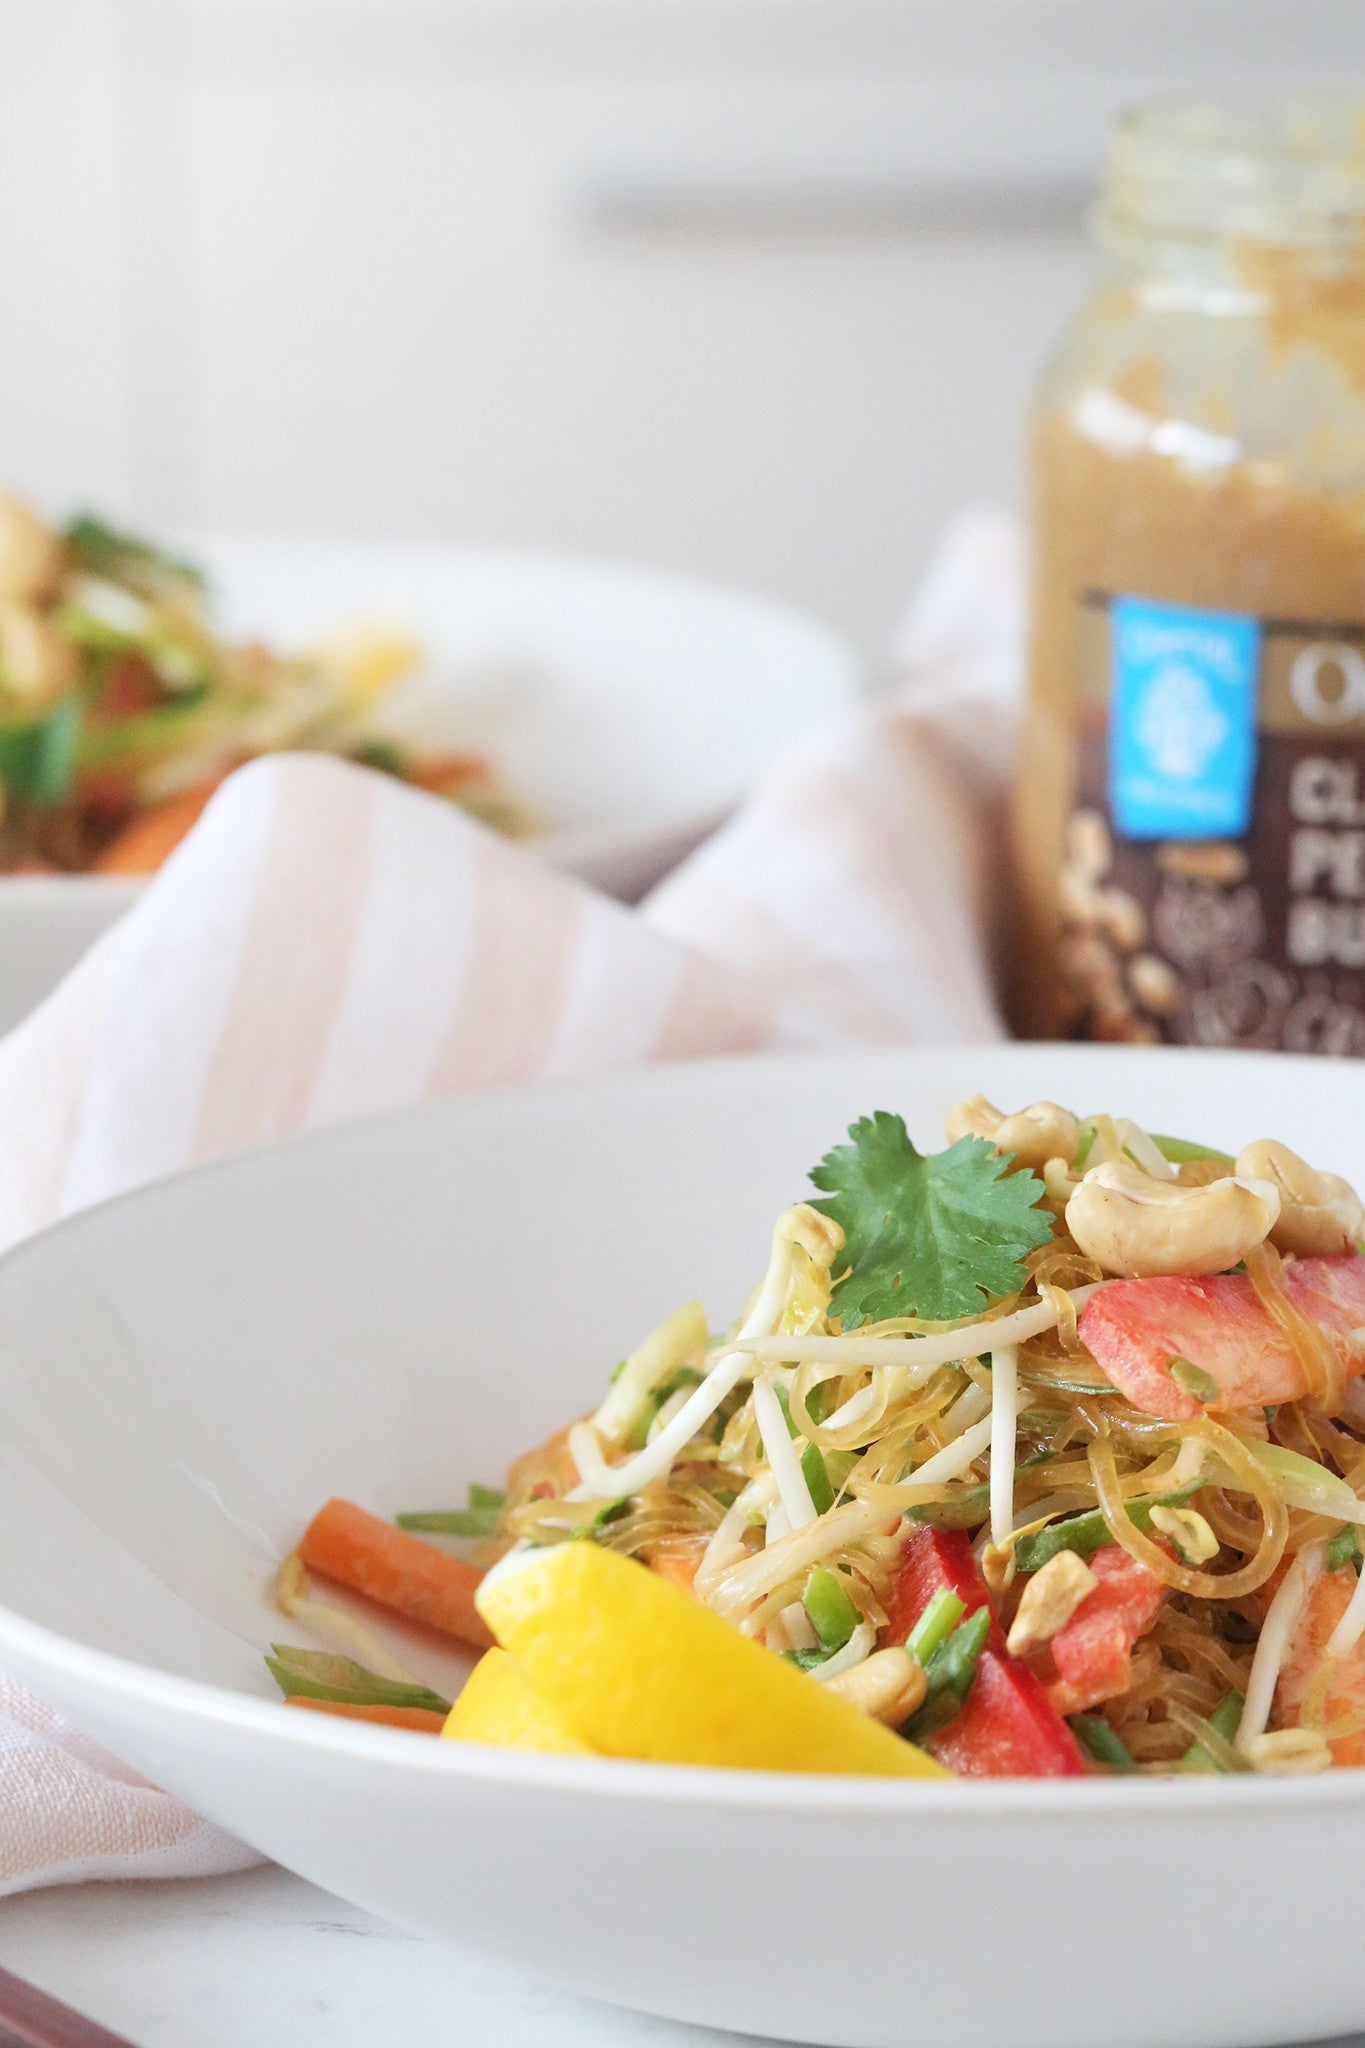 VEGAN PAD THAI SALAD - healthy, plant-based, egg free, dairy free, no fish sauce, grain free, low carb, kelp noodles, peanut butter, almond butter, recipe, easy, begoodorganics